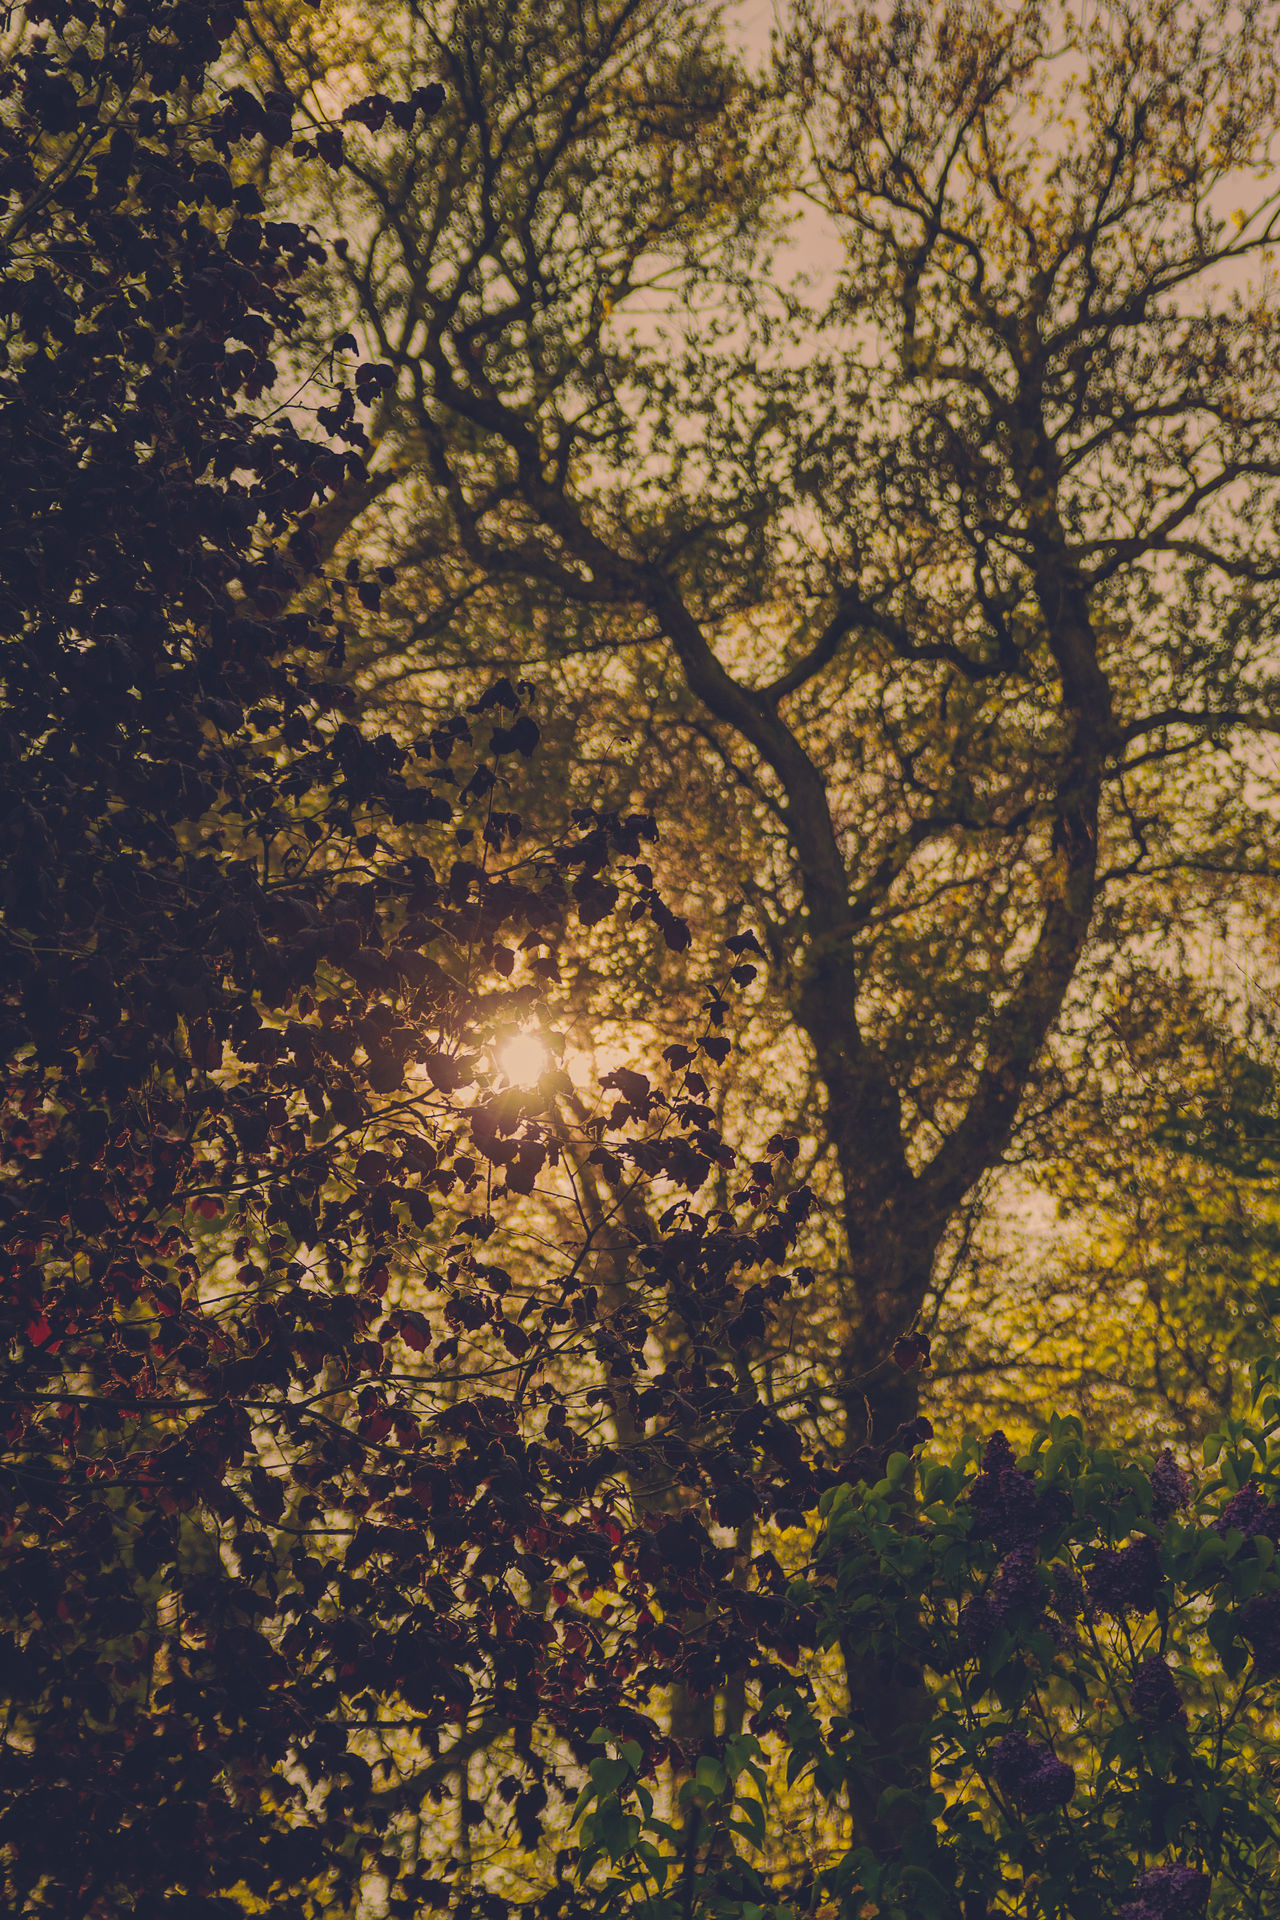 Gegenlicht Autumn Backlit Beauty In Nature Branch Contre-jour Shot Day Growth Illuminated Low Angle View Nature No People Outdoors Scenics Sun Sunlight Tranquility Tree